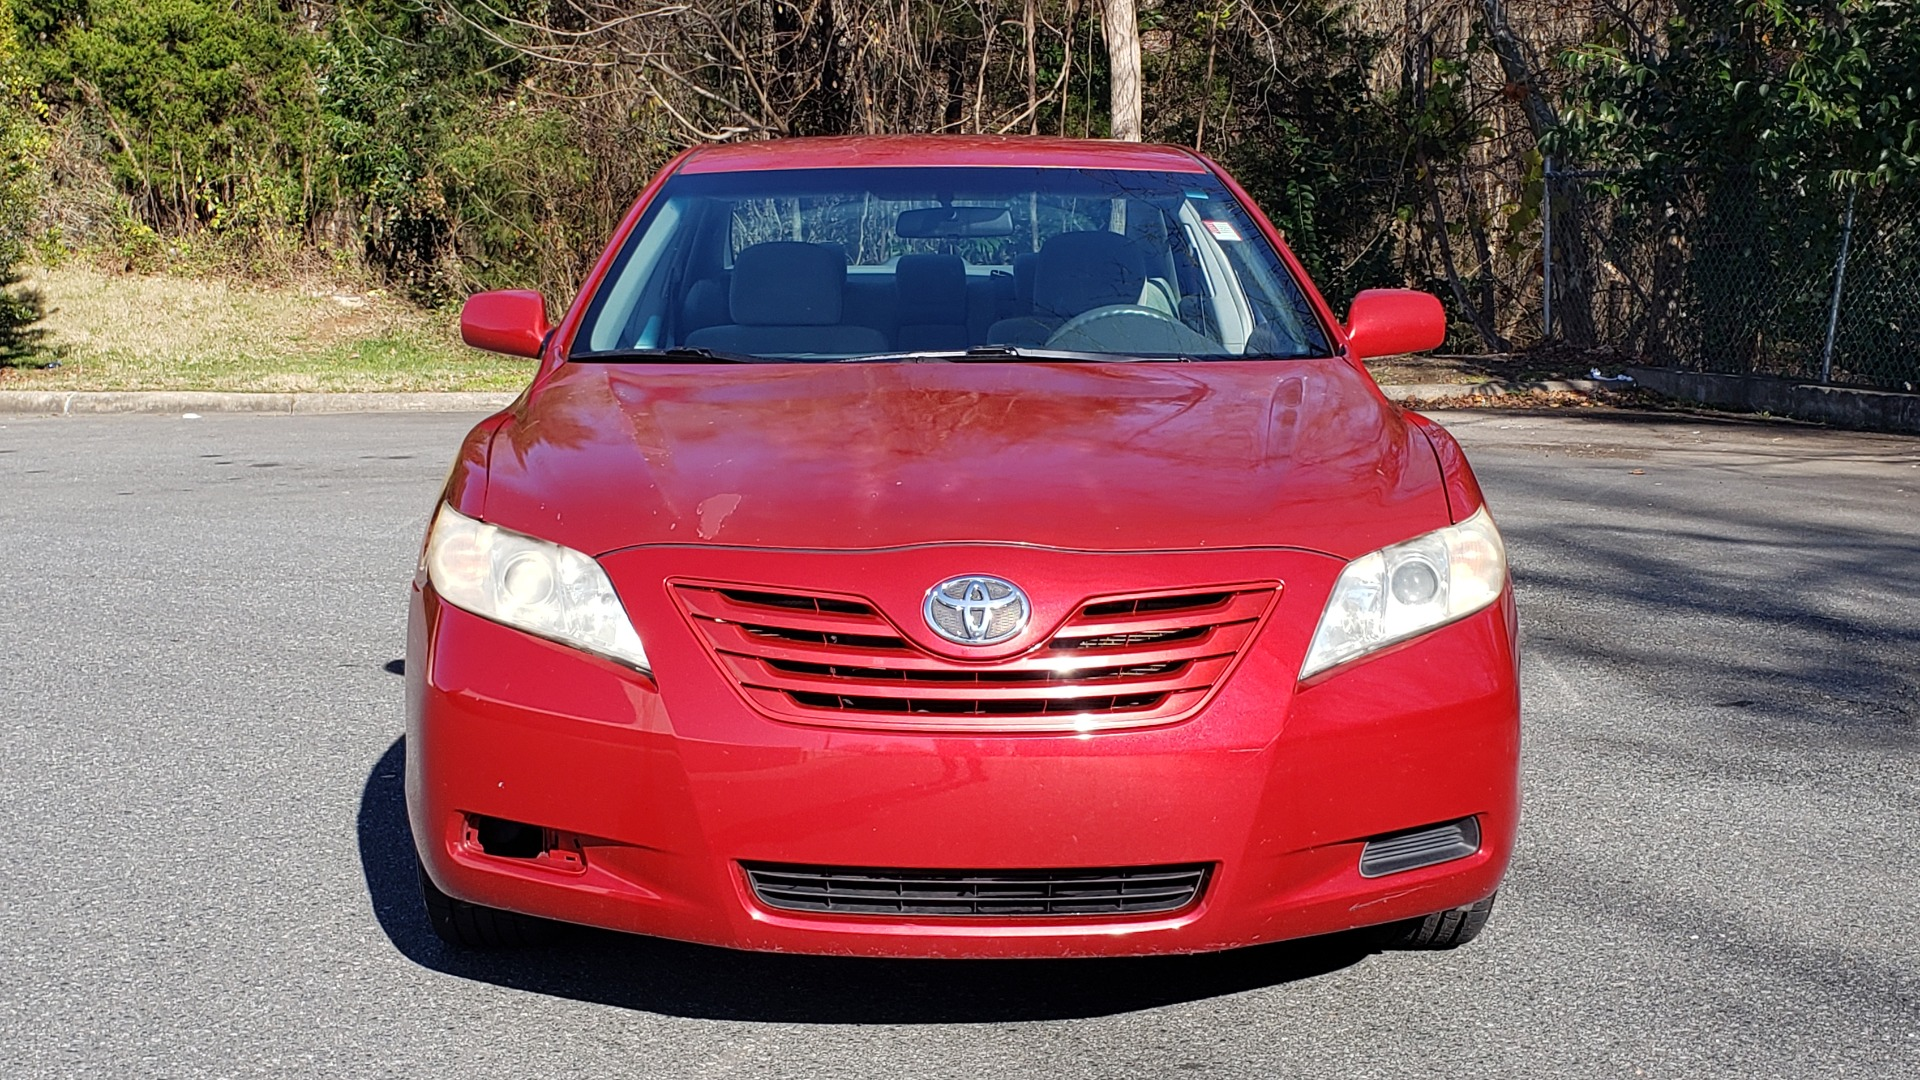 Used 2009 Toyota CAMRY LE / 2.4L SEDAN / FWD / 4-CYL / AUTO / CLOTH / CLEAN for sale Sold at Formula Imports in Charlotte NC 28227 16